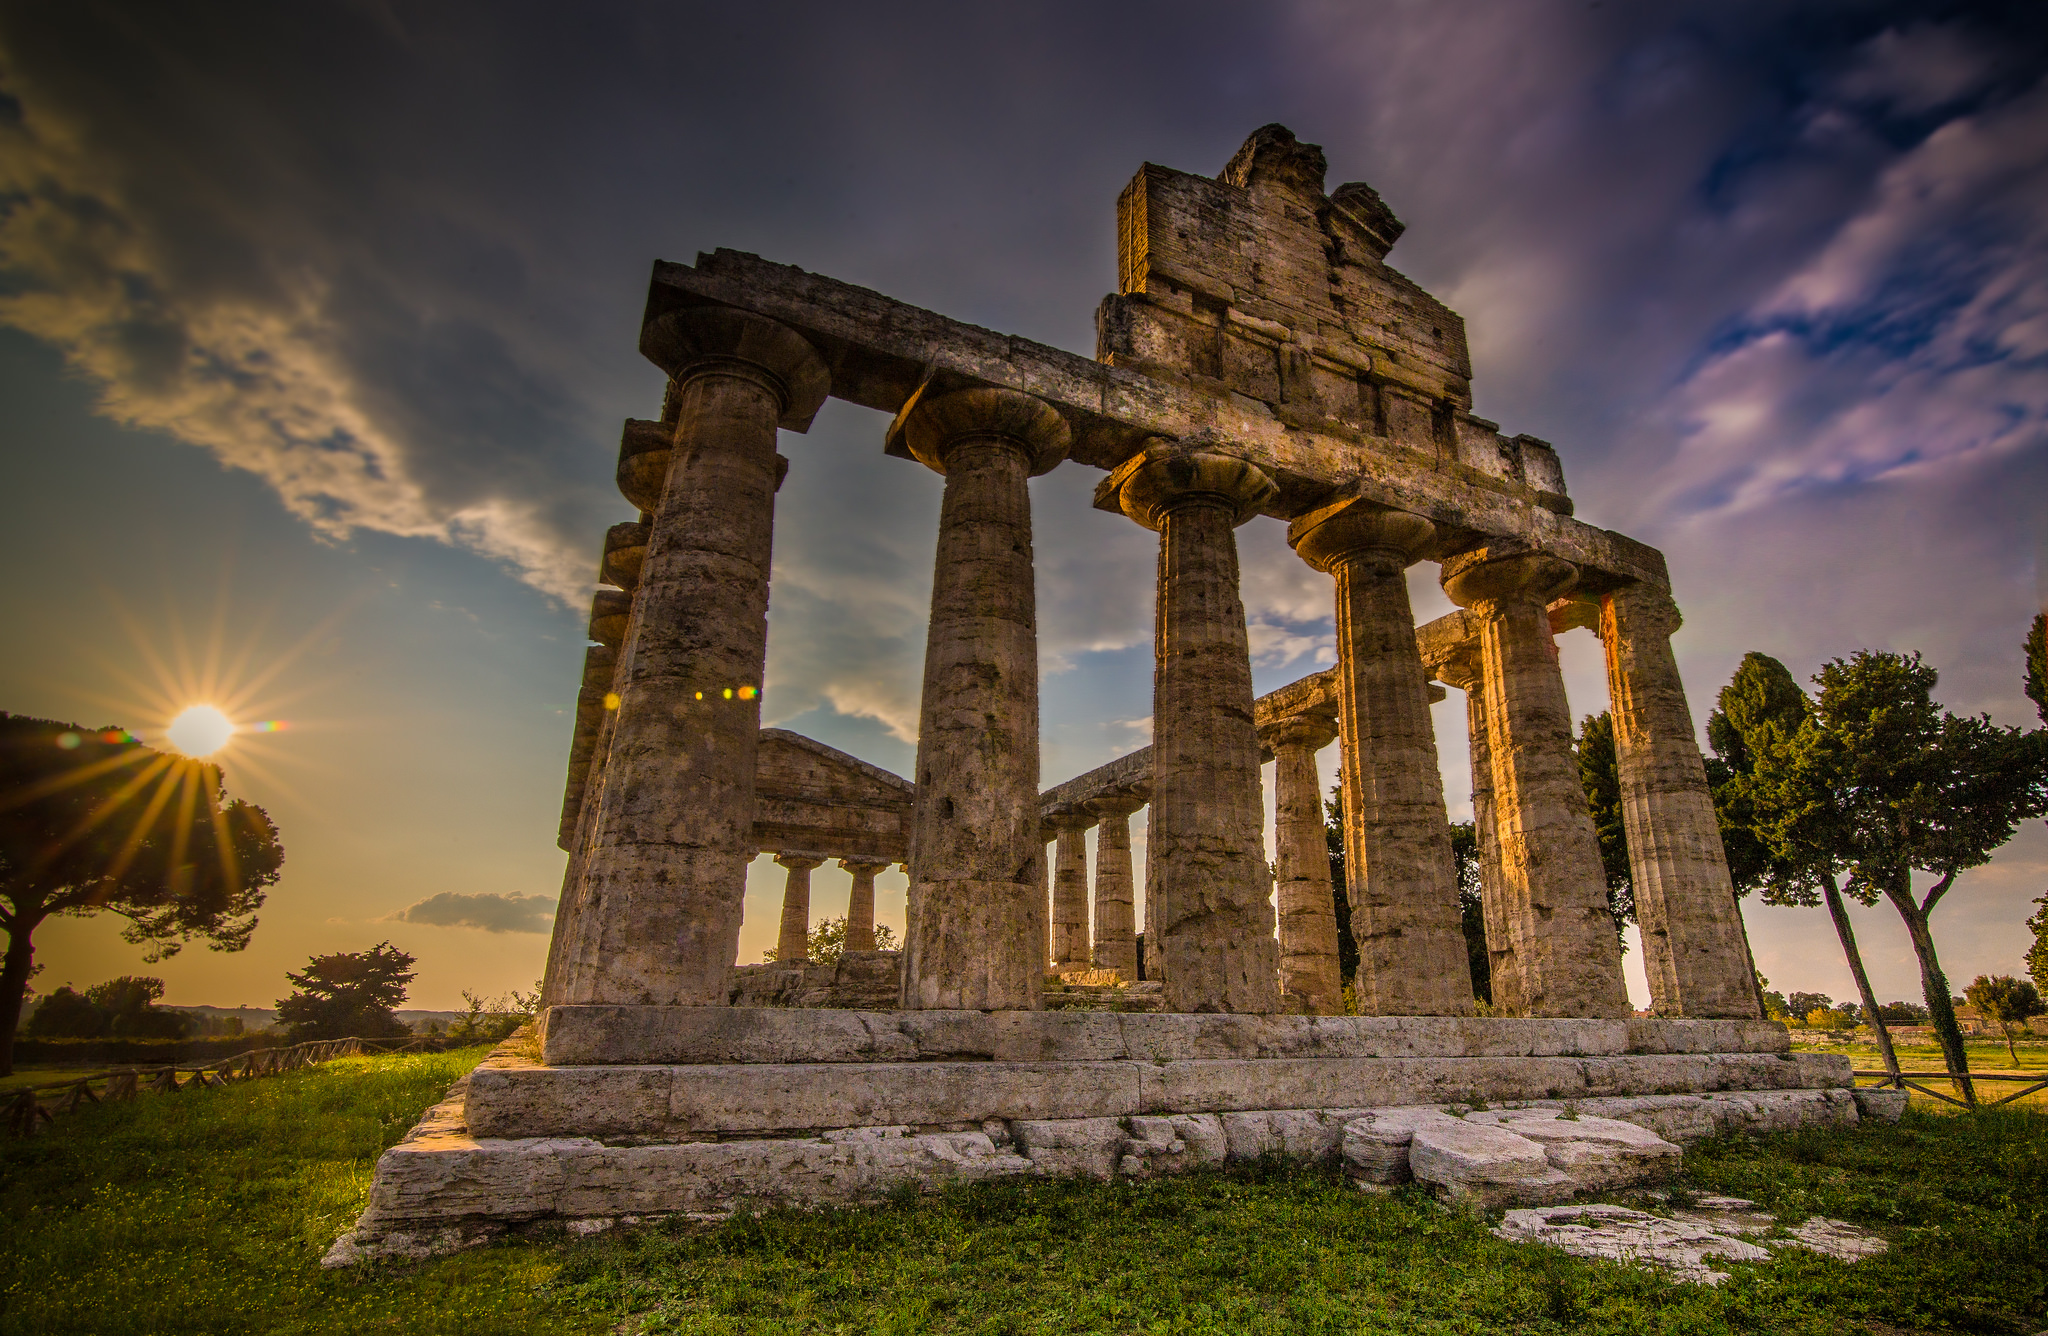 Temple of Athena, Italy